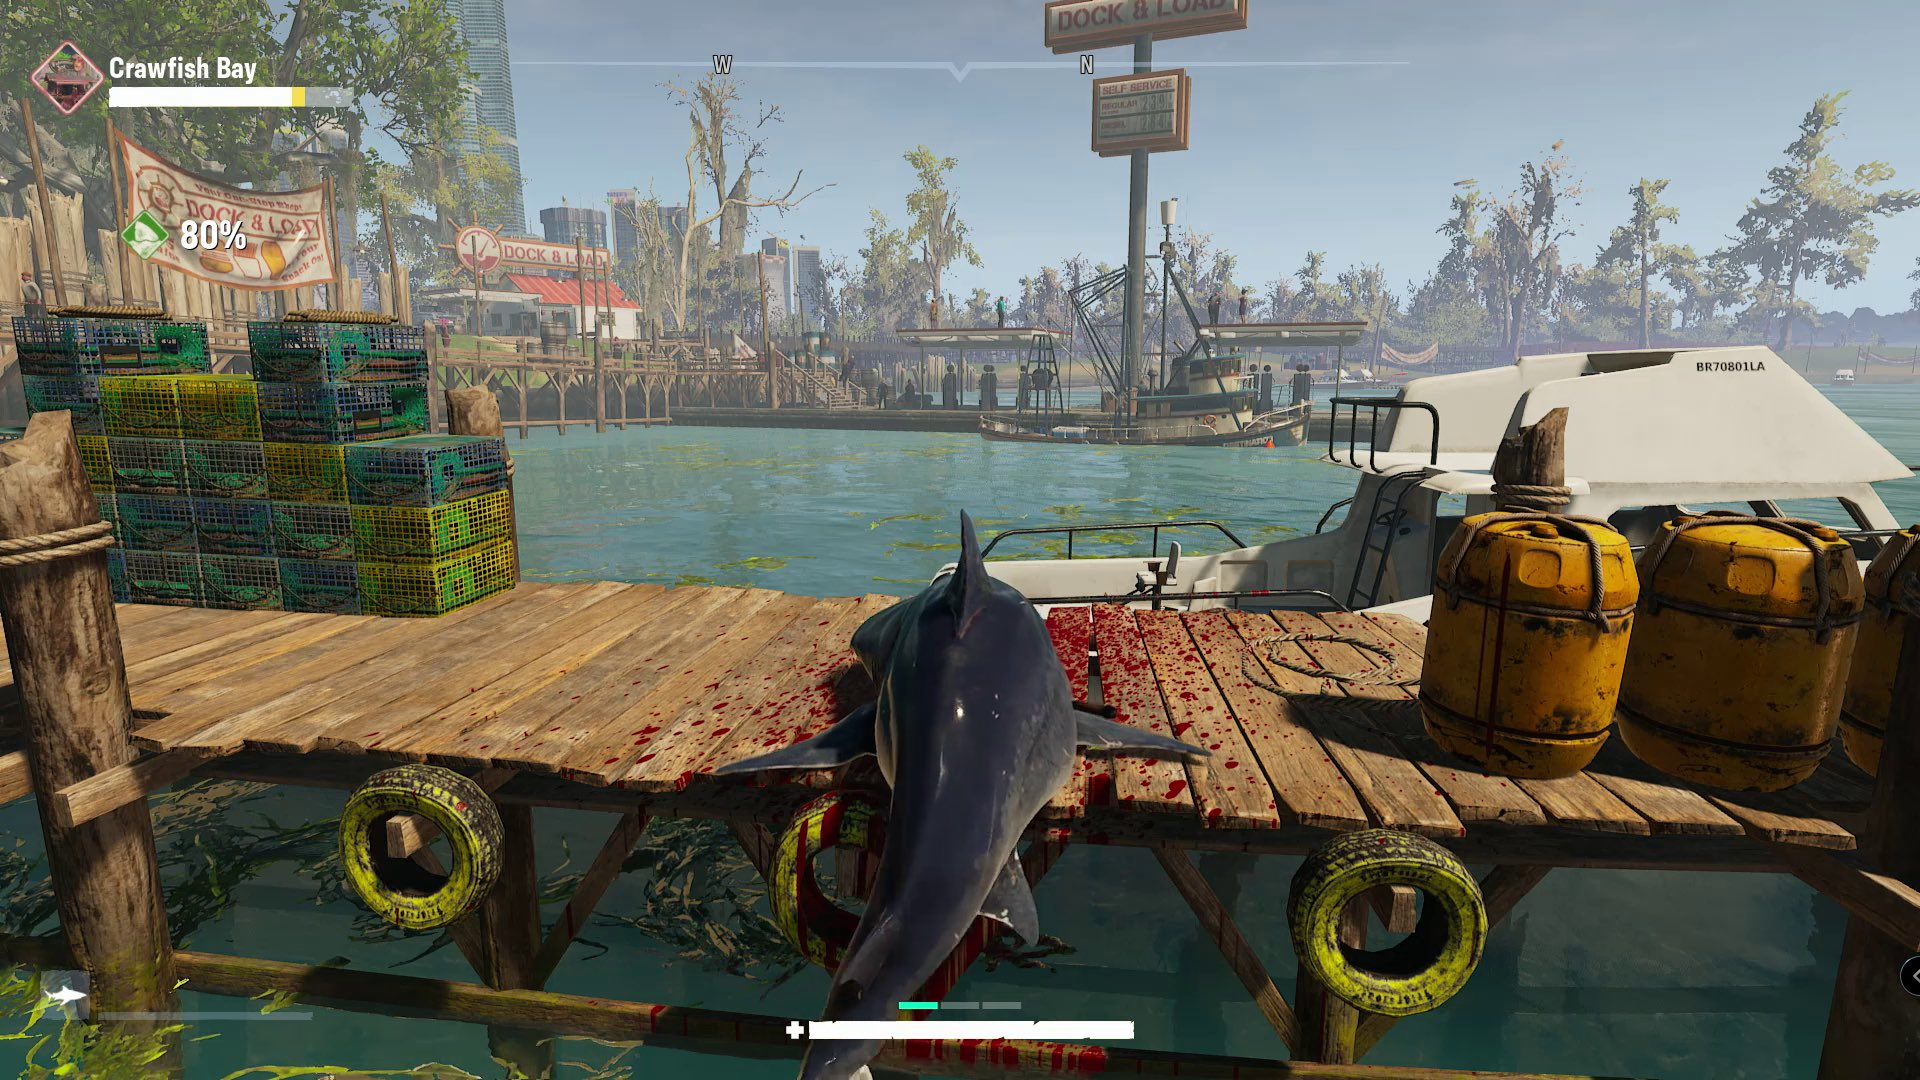 You're a hungry shark in Tripwire's Maneater, and humans are the tastiest snack screenshot